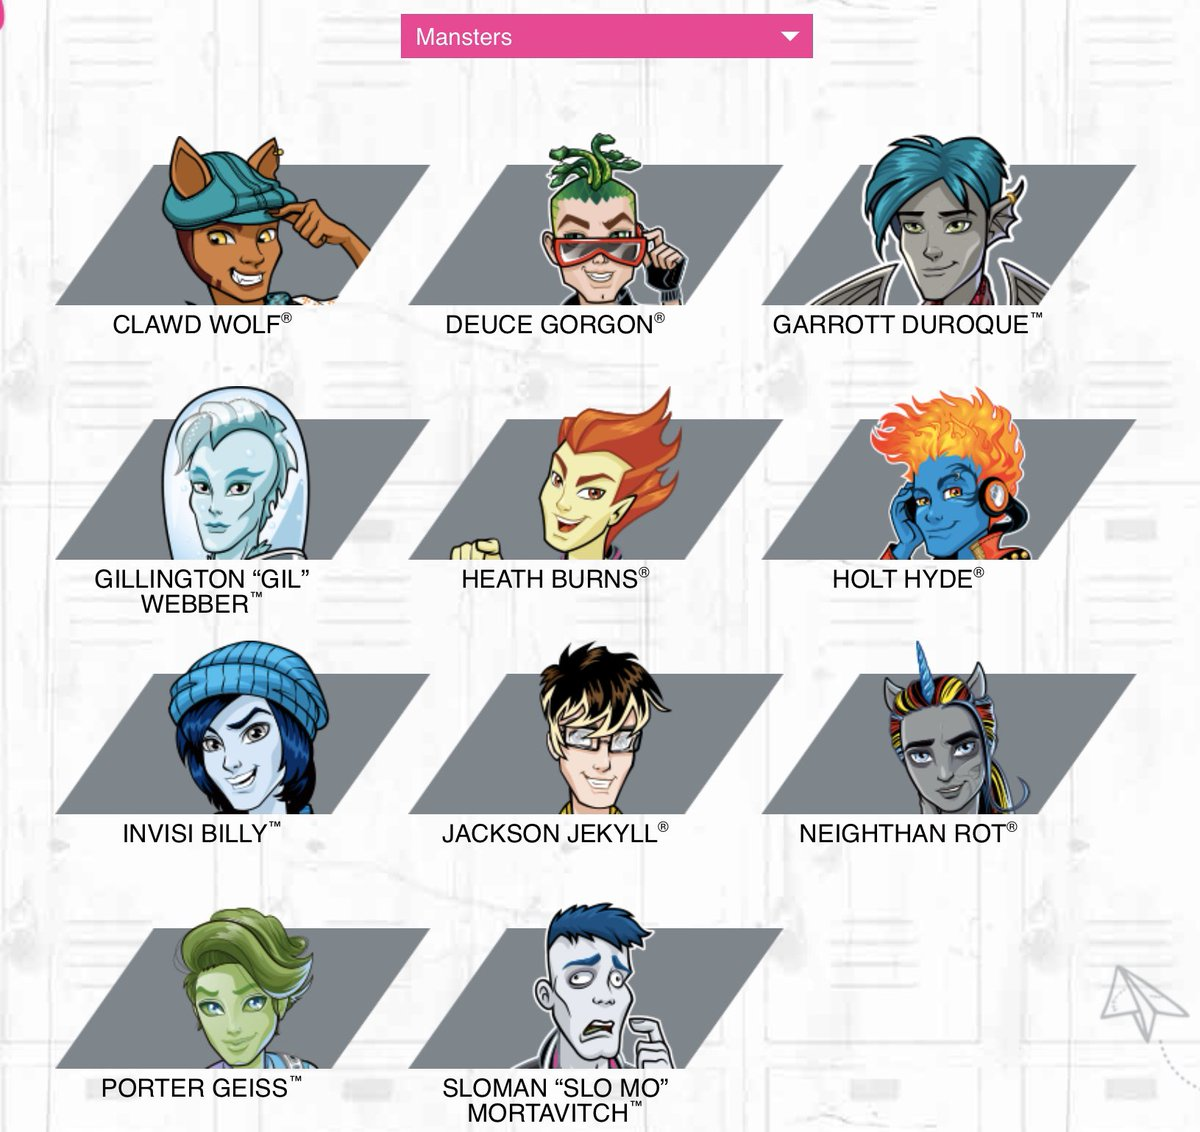 Kelly Turnbull On Twitter Monster High Called All The Boy Characters Mansters And I Hope Someone Got A Promotion For That